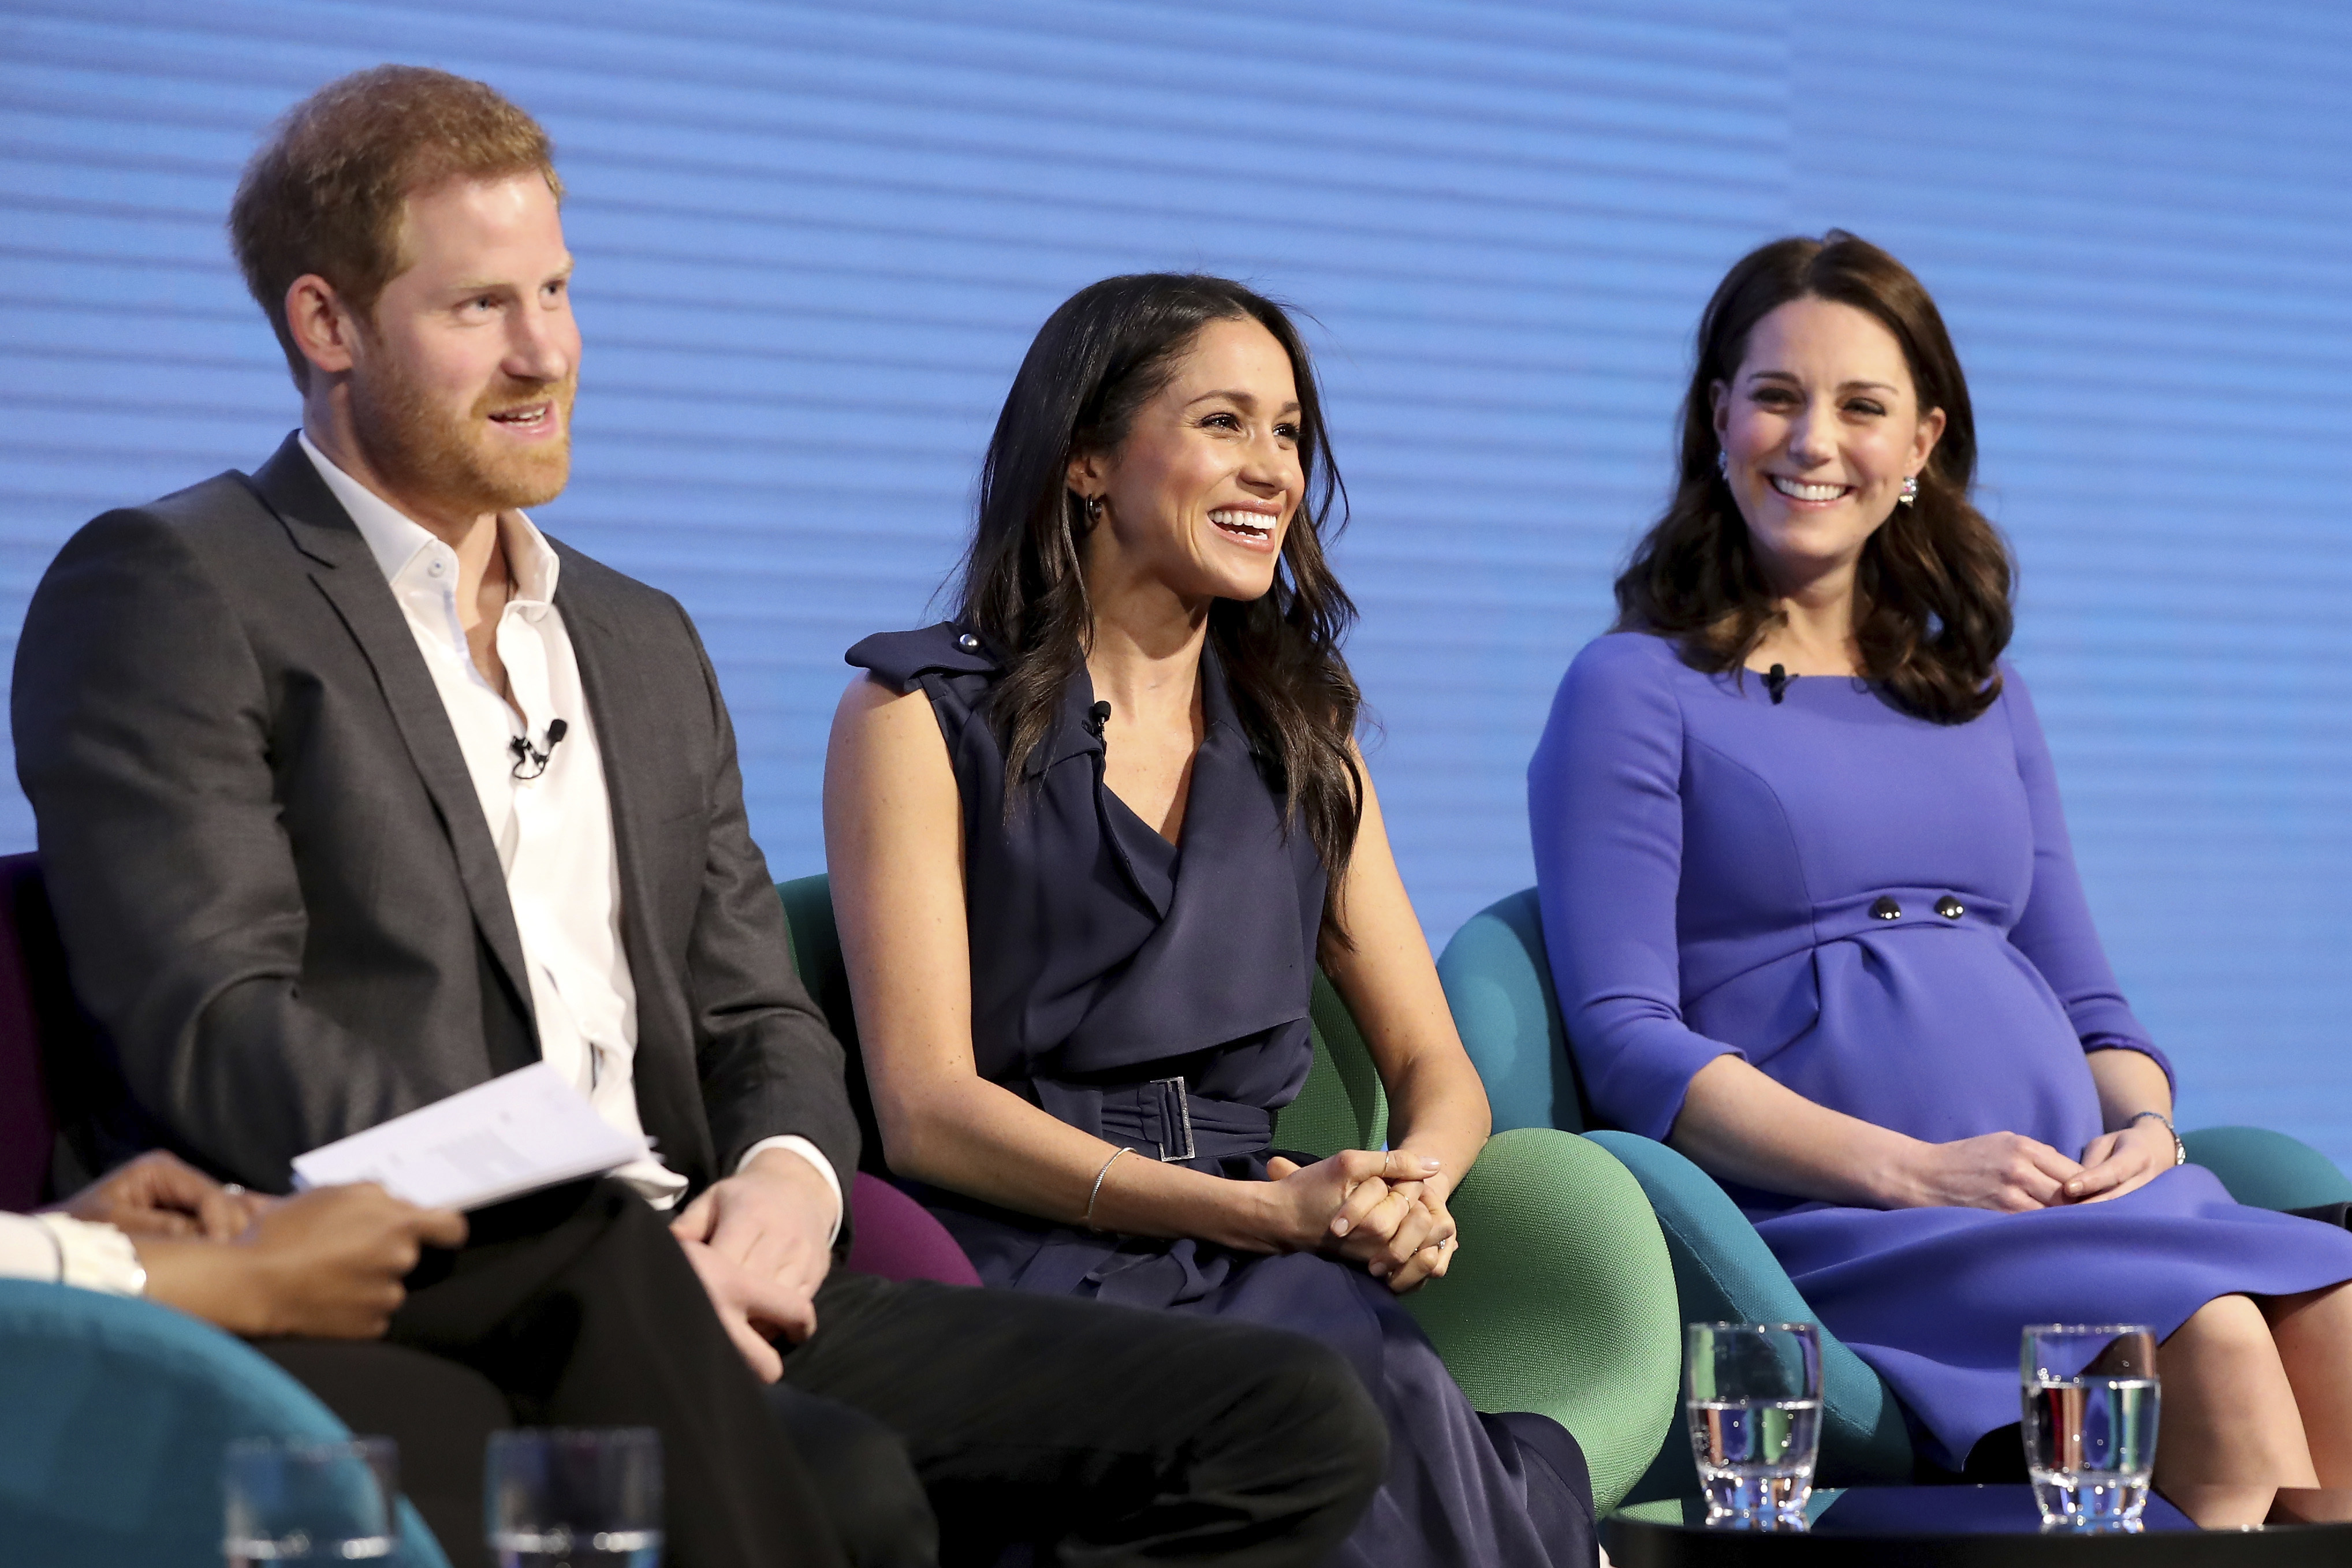 <div class='meta'><div class='origin-logo' data-origin='none'></div><span class='caption-text' data-credit='Chris Jackson/Pool via AP'>Britain's Kate, Duchess of Cambridge, right, with Prince Harry and his fiancee Meghan Markle attend the first annual Royal Foundation Forum in London, Wednesday Feb. 28, 2018.</span></div>